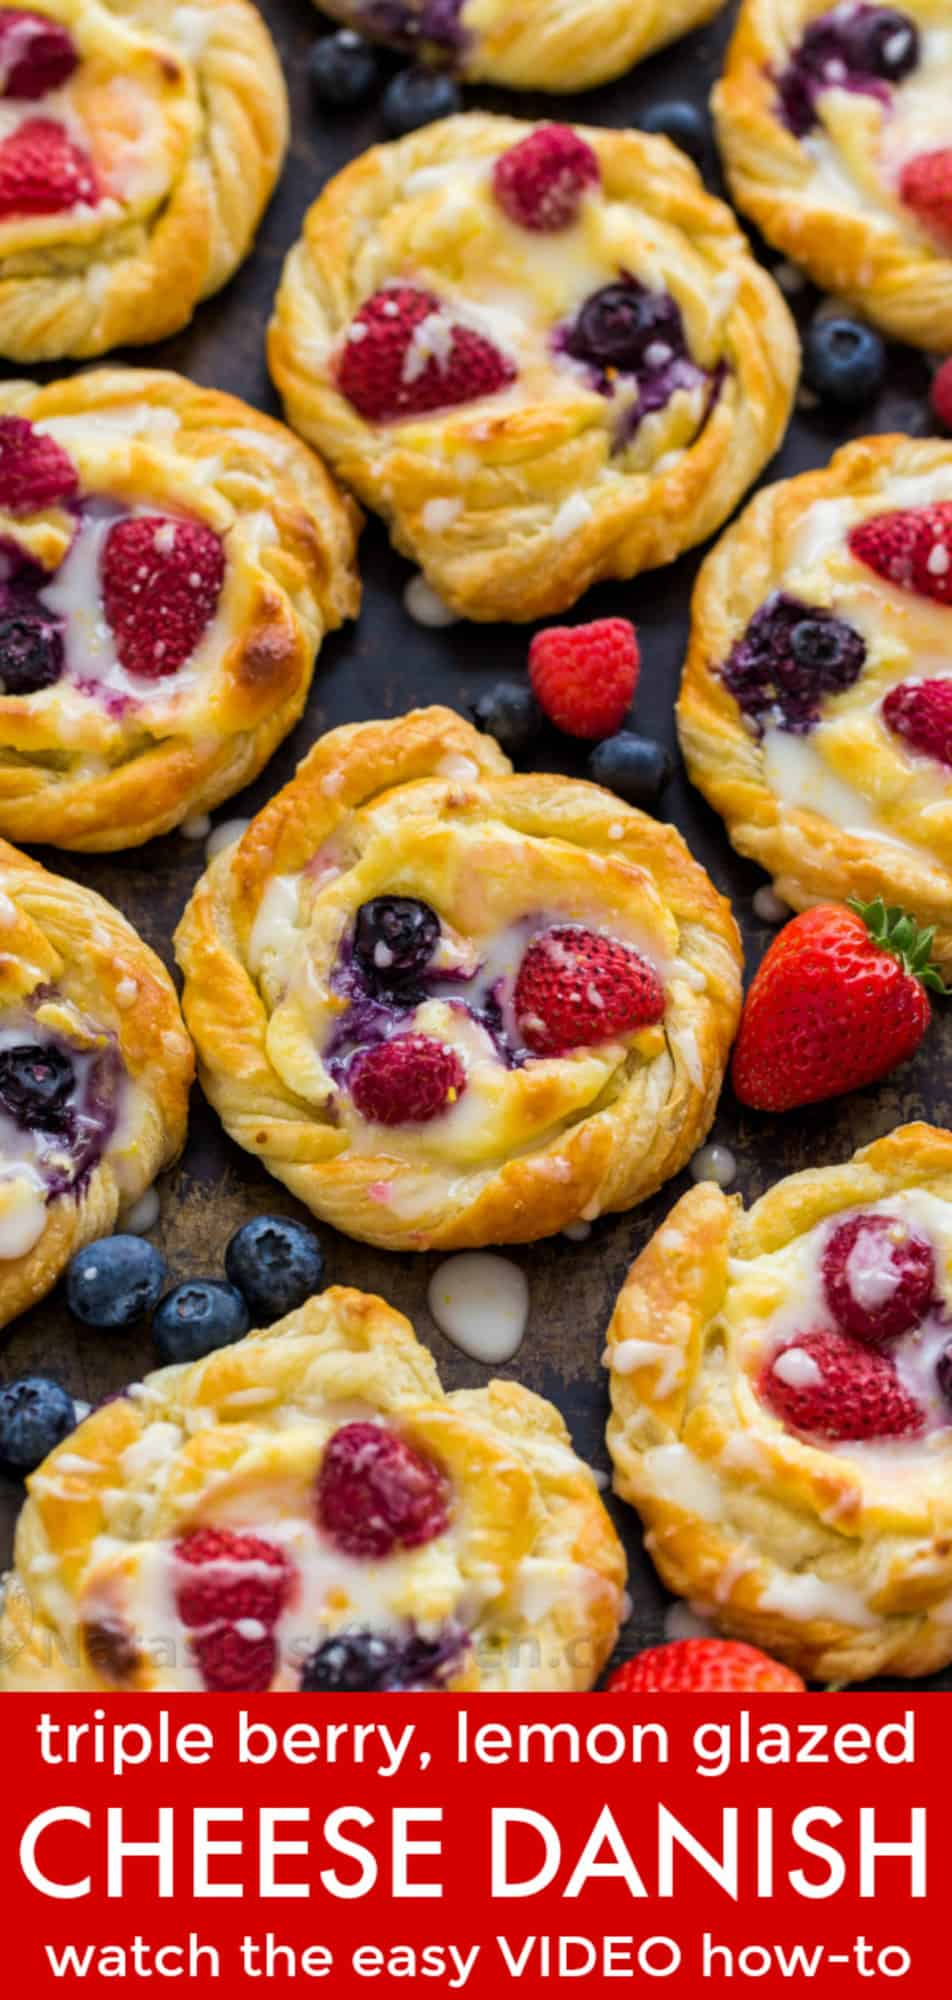 Cheese danish puff pastry recipe served with a drizzle of lemon glaze surrounded by berries